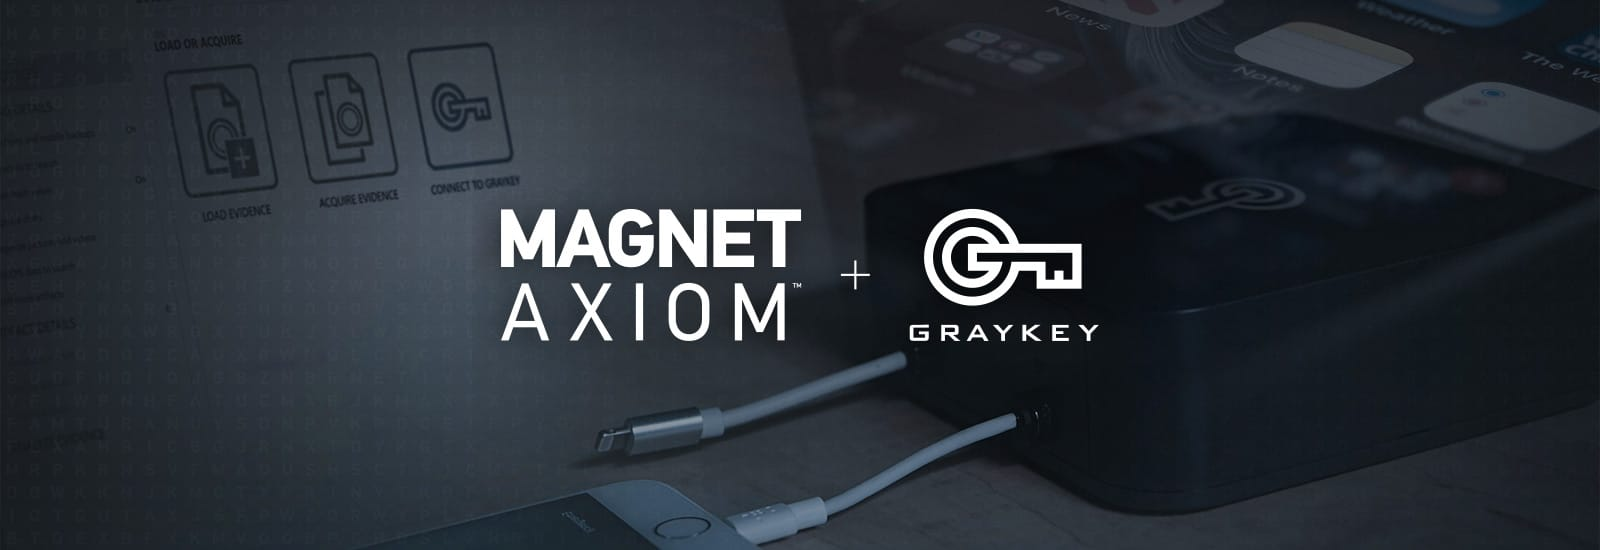 AXIOM + GrayKey